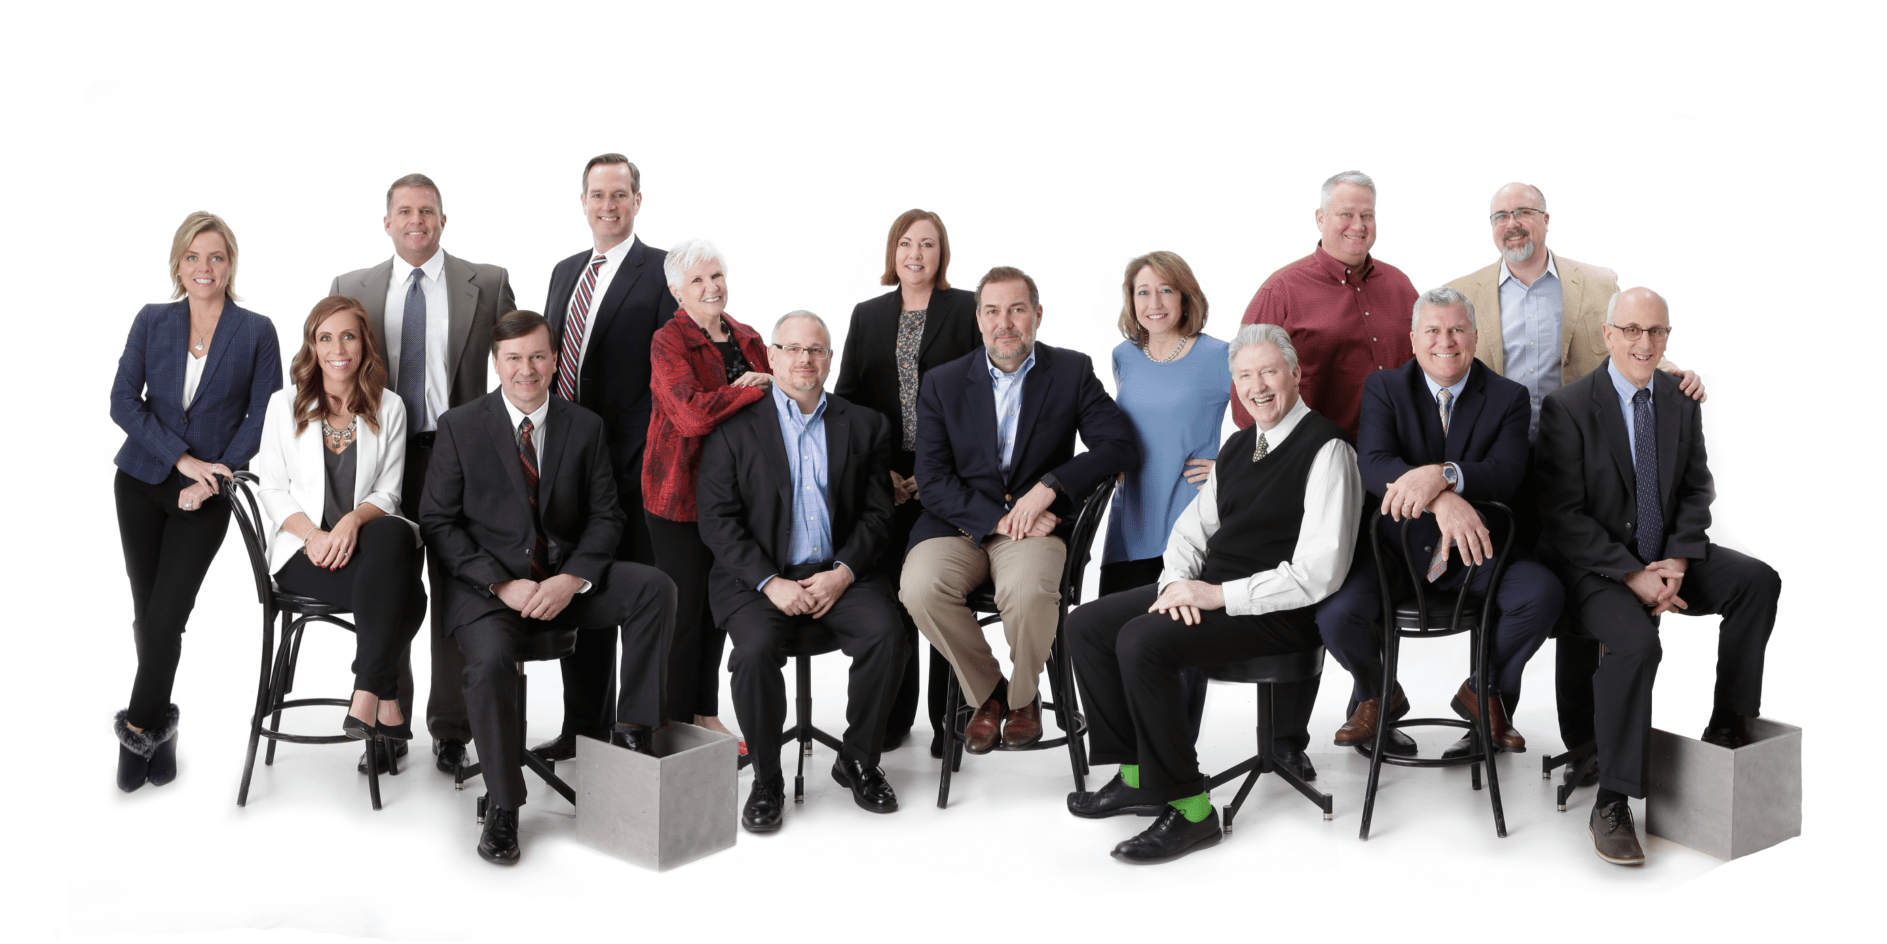 Rocky River Chamber of Commerce Board of Directors 2019